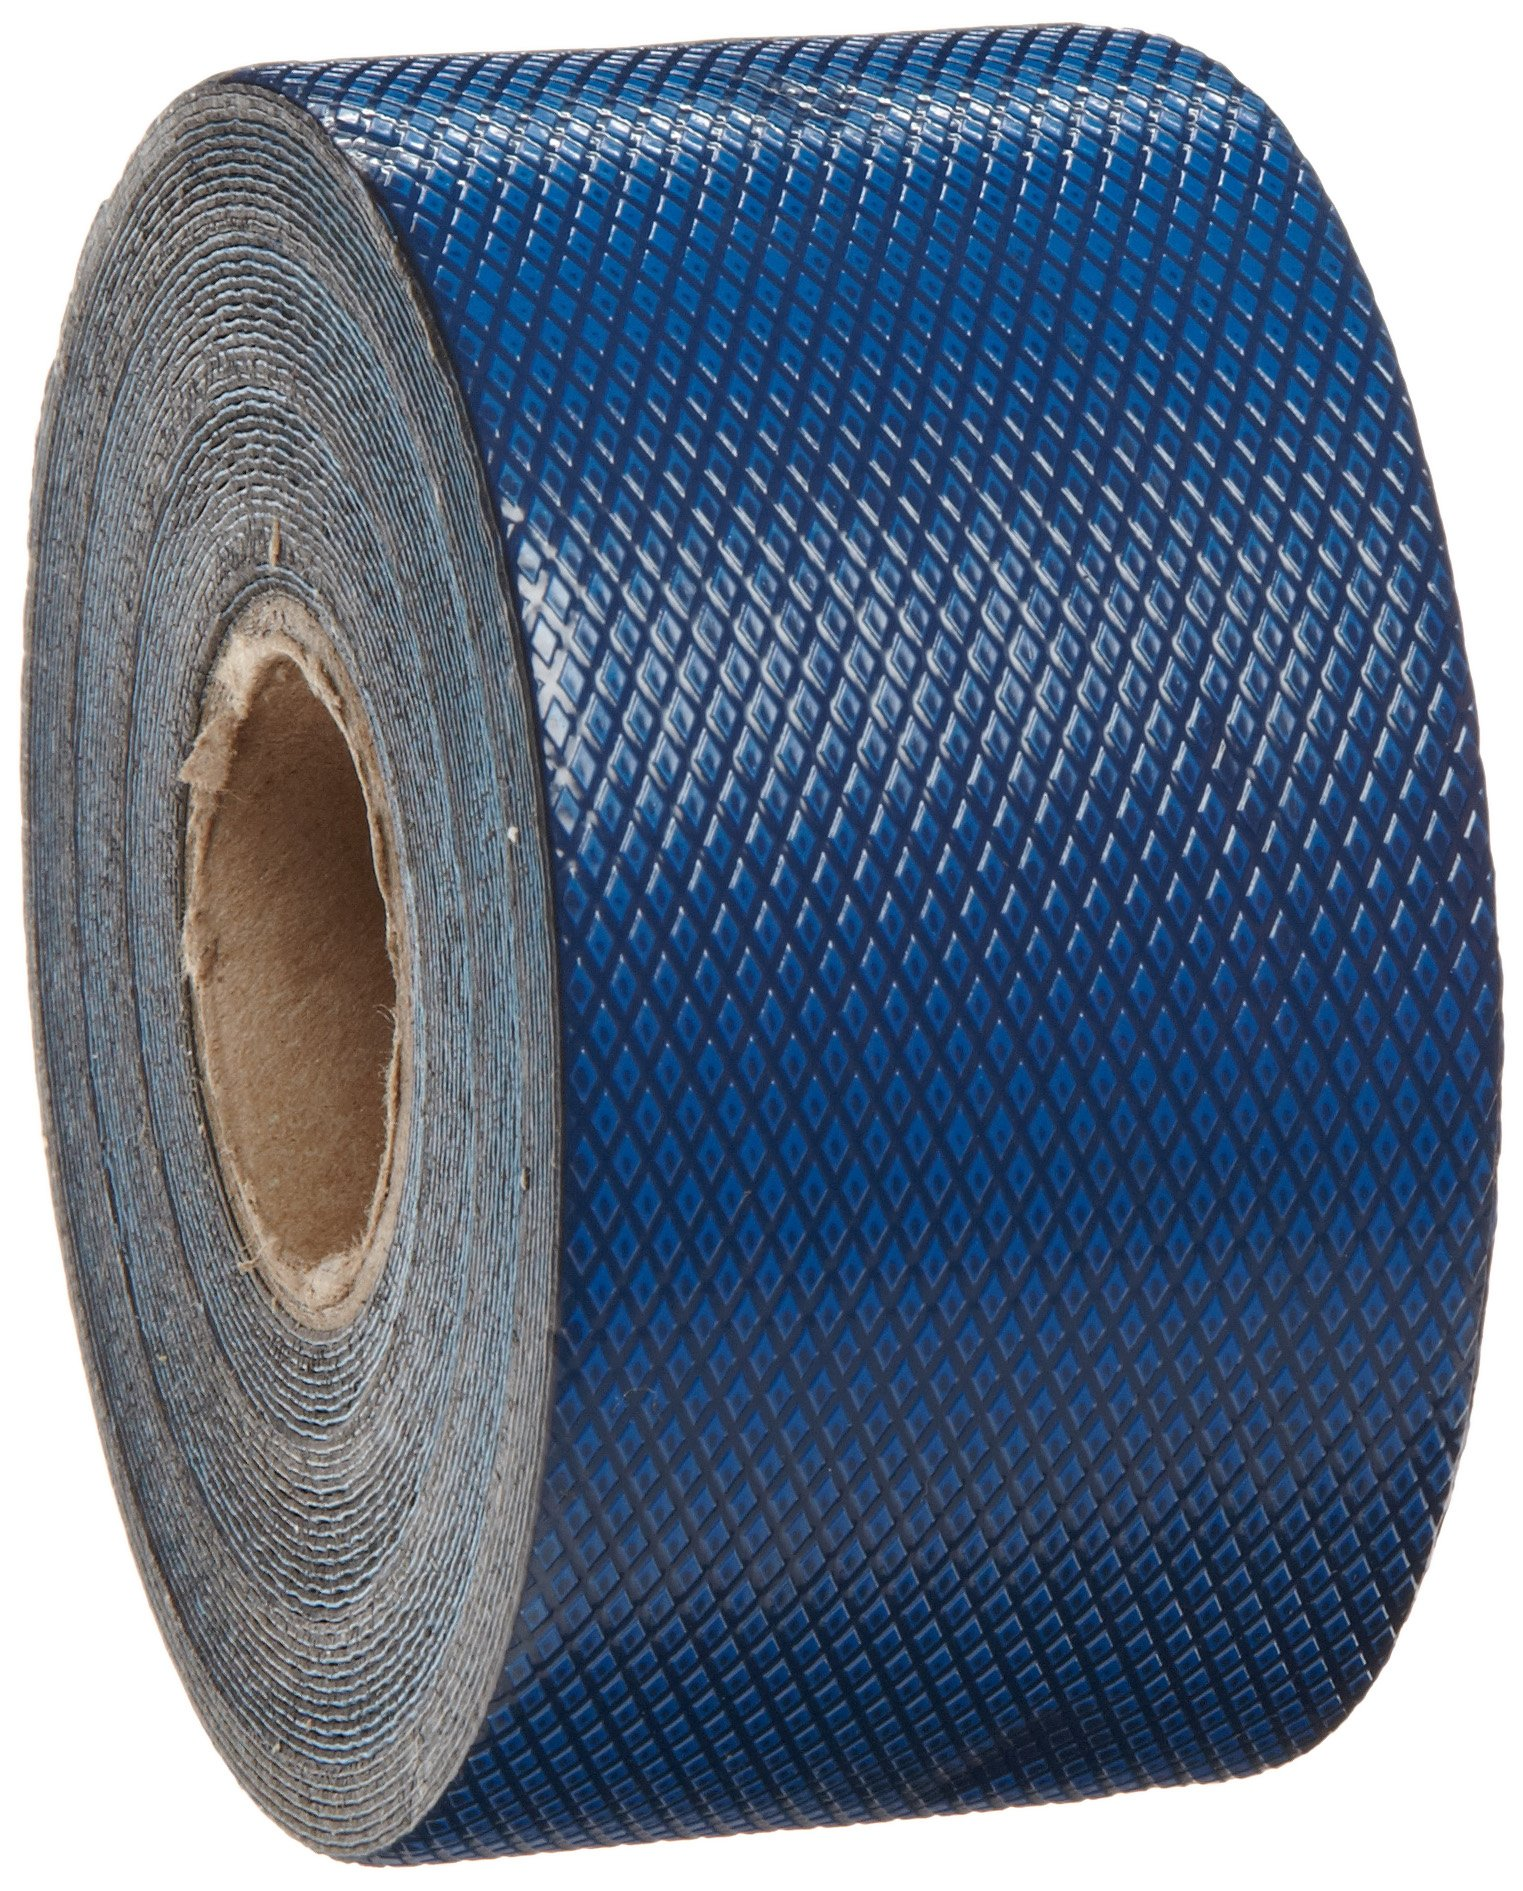 Morris Products 60222 Rubber Splicing Tape, Blue, 2'' Width, 22' Length